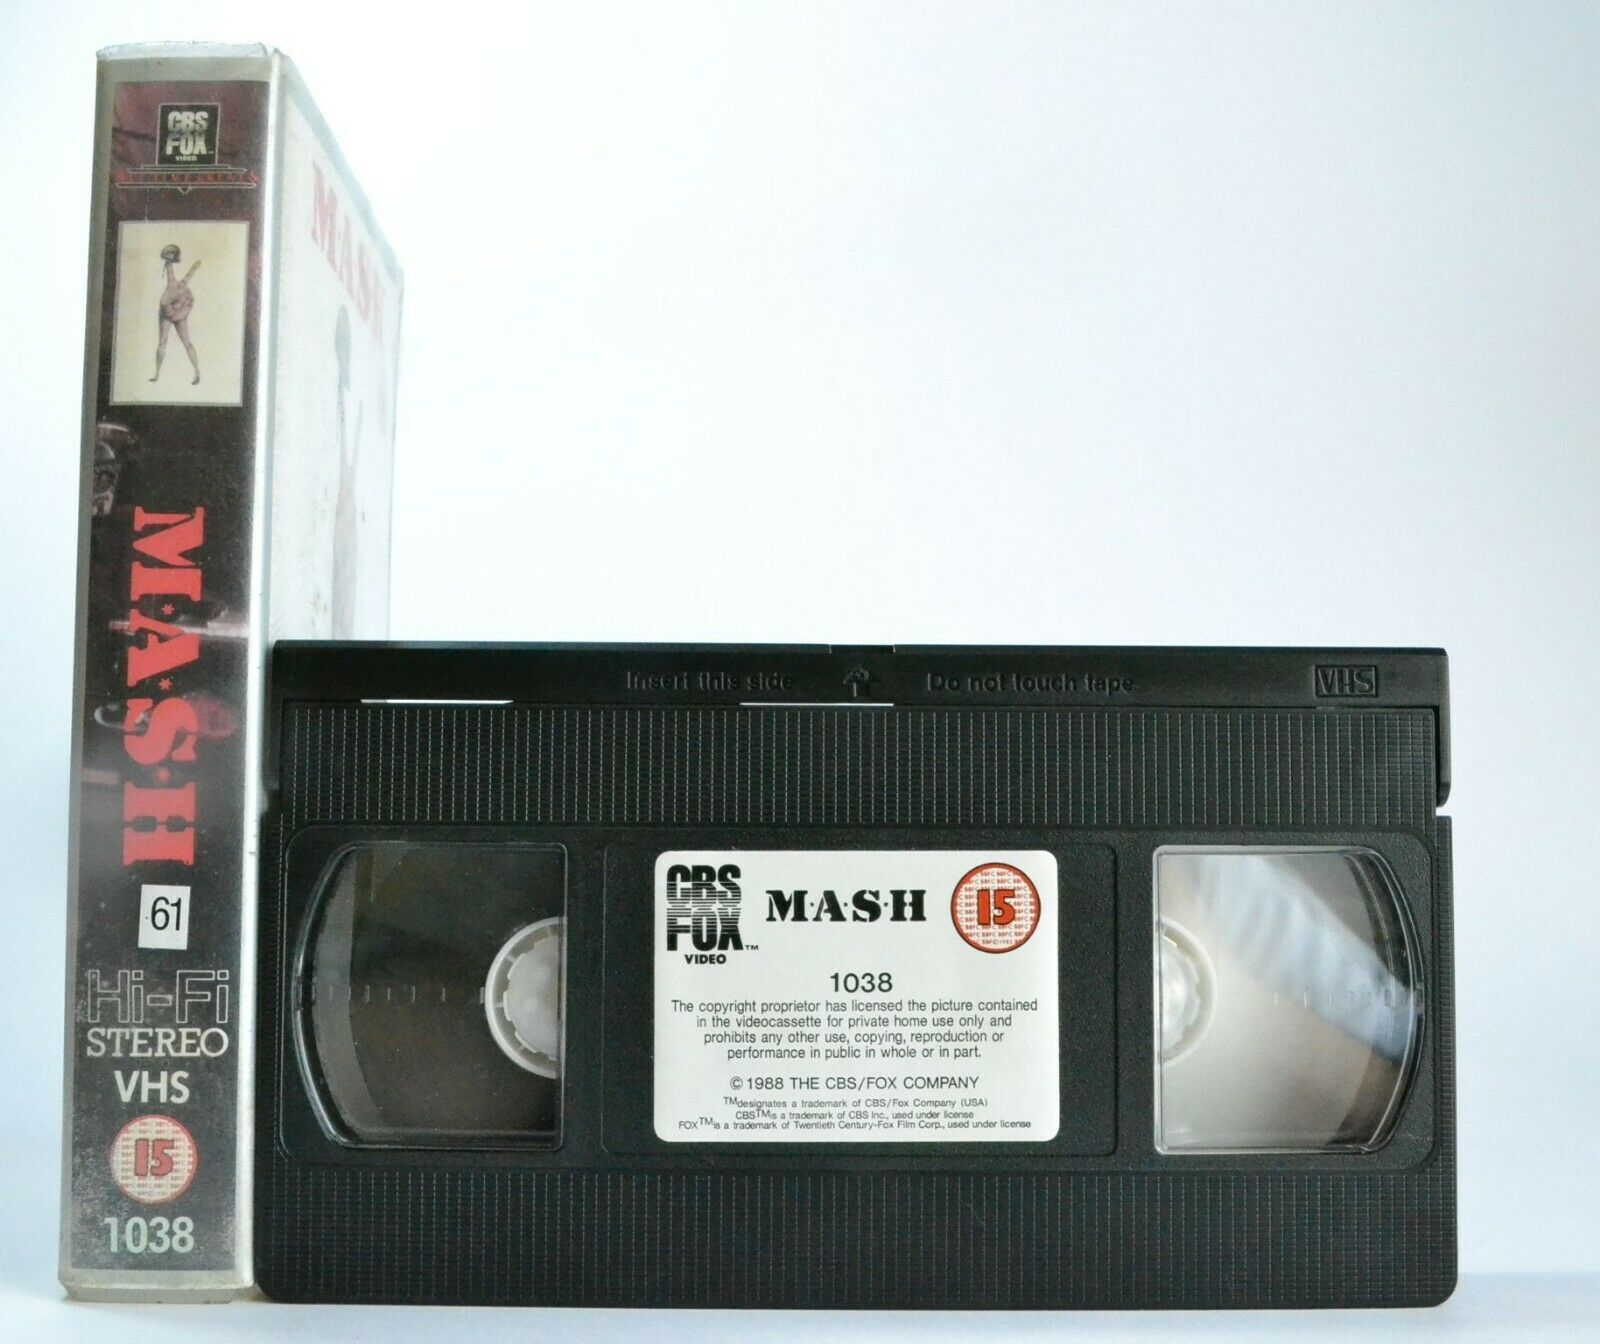 M*A*S*H* (MASH): (1970) Black War Comedy - Donald Sutherland/Robert Duvall - VHS